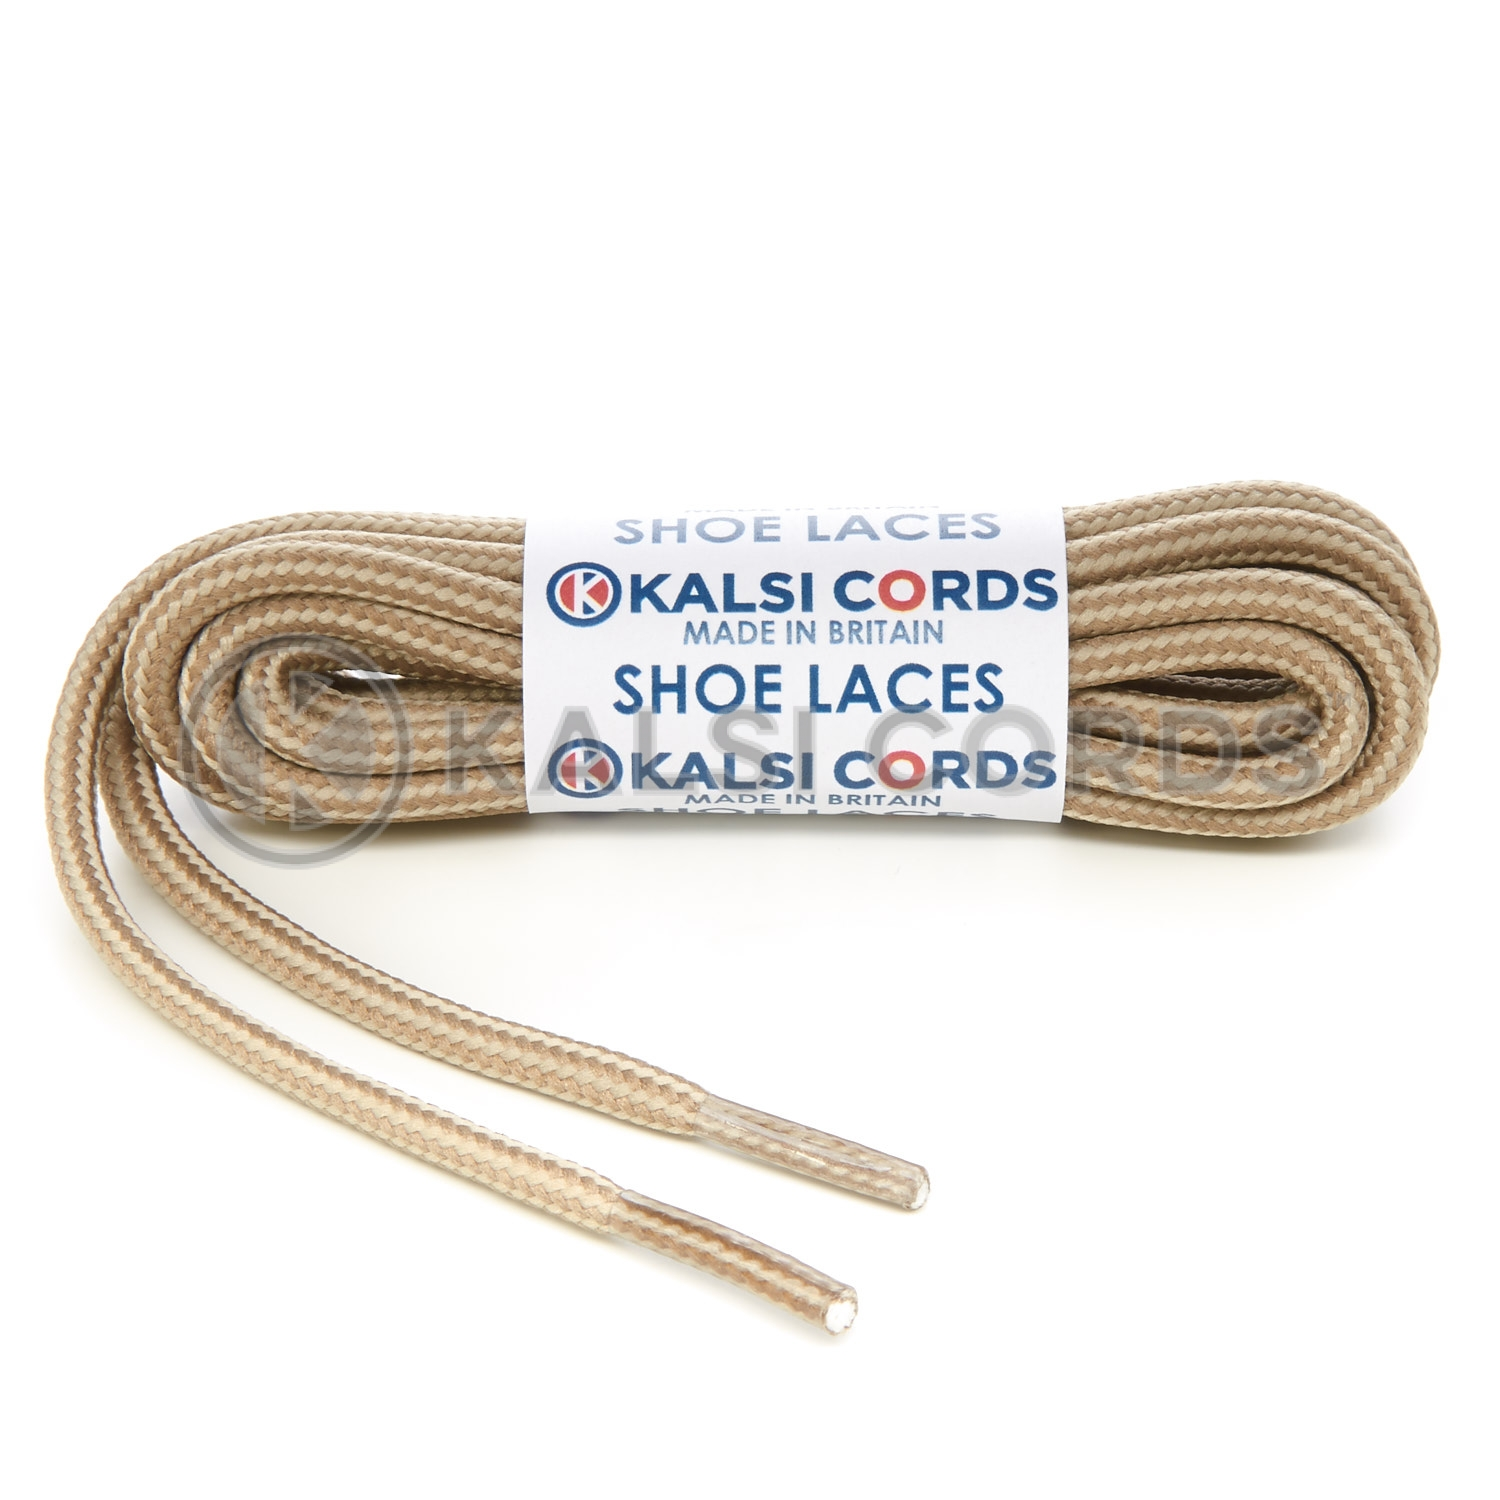 T621 5mm Round Cord Stripe Shoe Laces Cream Light Fawn Kids Trainers Adults Hiking Walking Boots Kalsi Cords